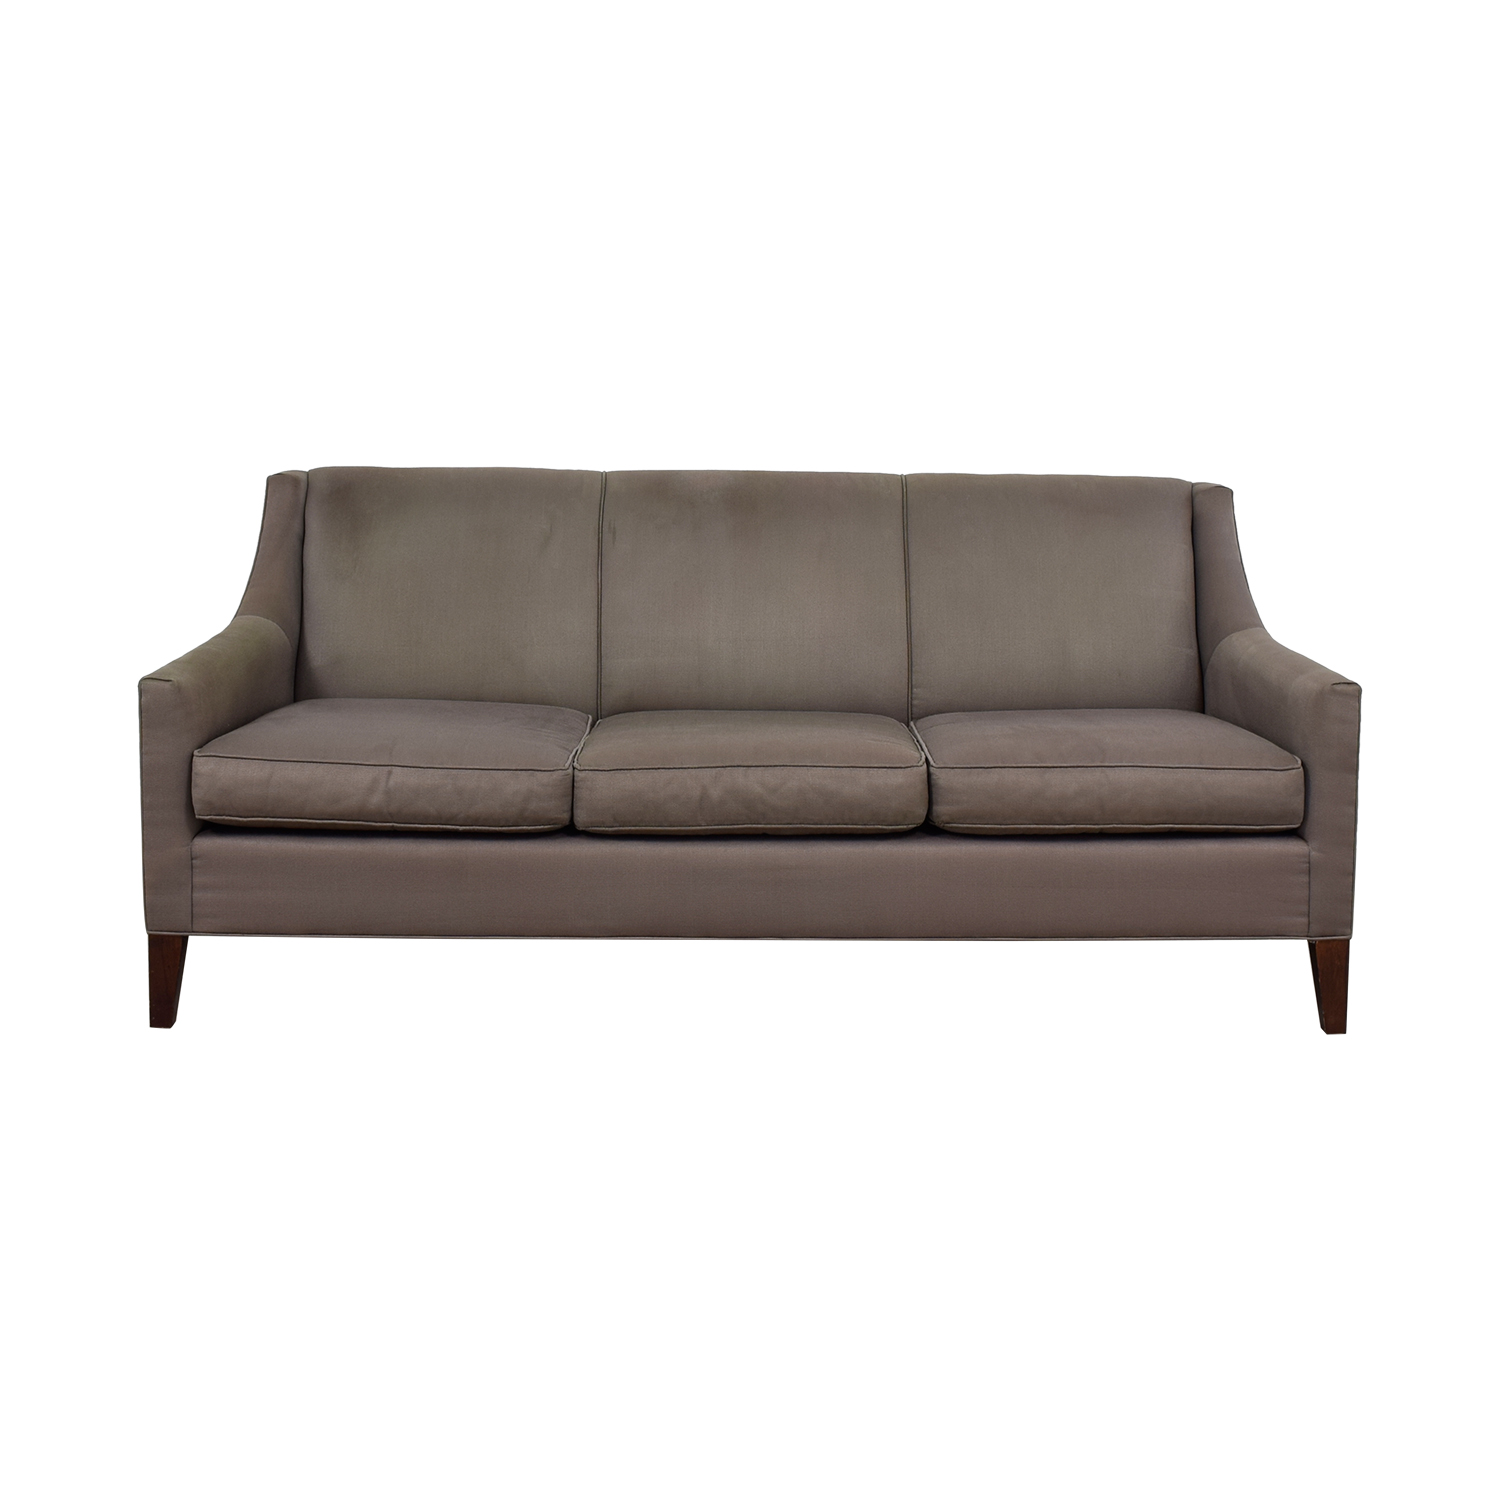 Mitchell Gold & Bob Williams Mitchell Gold & Bob Williams Cara Grey Three-Cushion Sofa price